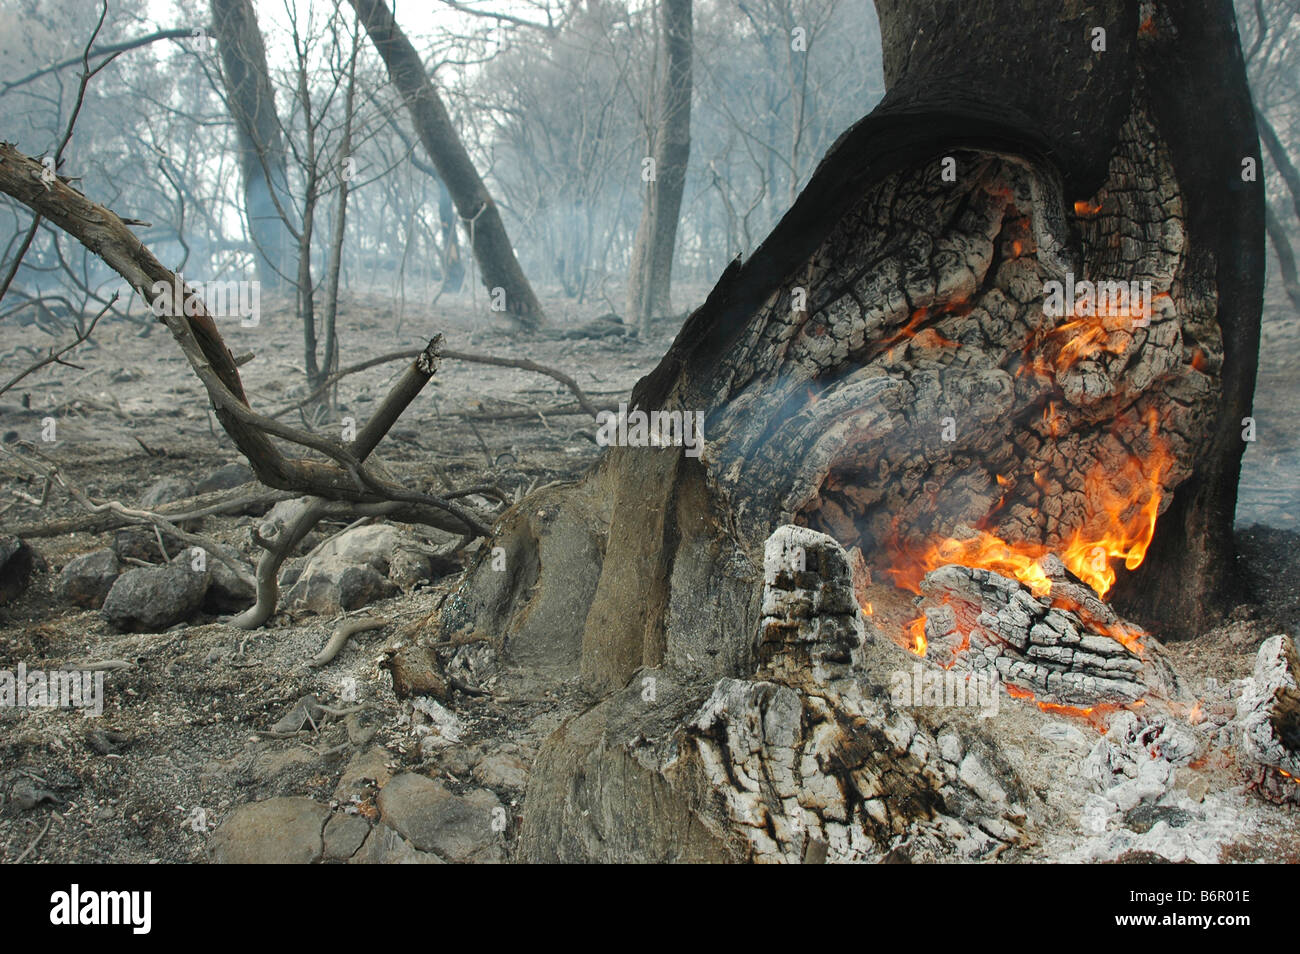 Israel Haifa Carmel Mountain Forest A fire smouldering in a tree trunk - Stock Image